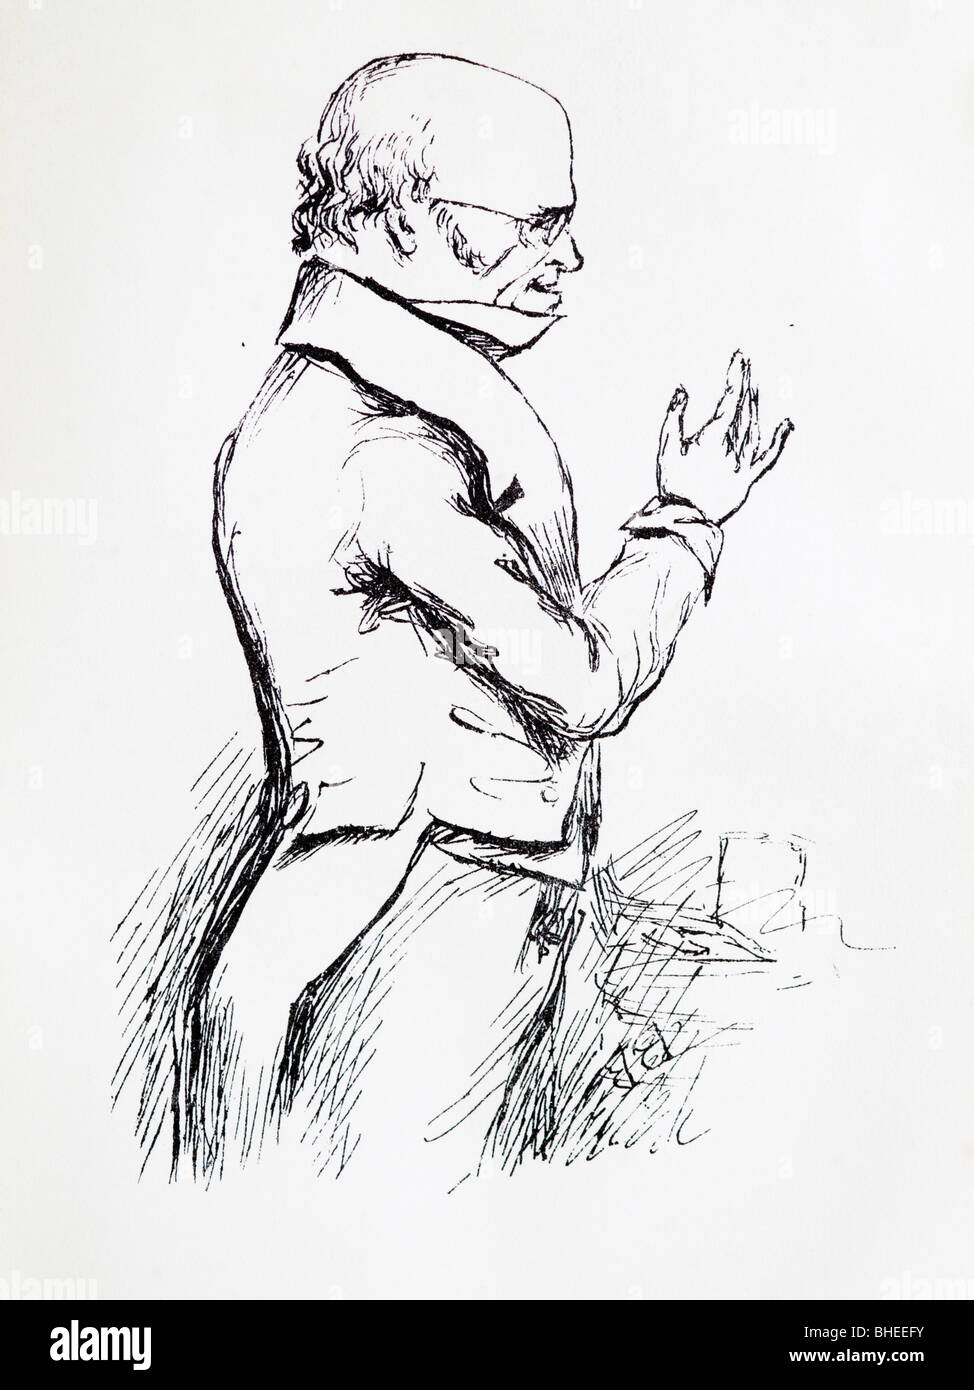 Drawing of the Scottish Anatomist Dr Robert Knox lecturing - Stock Image